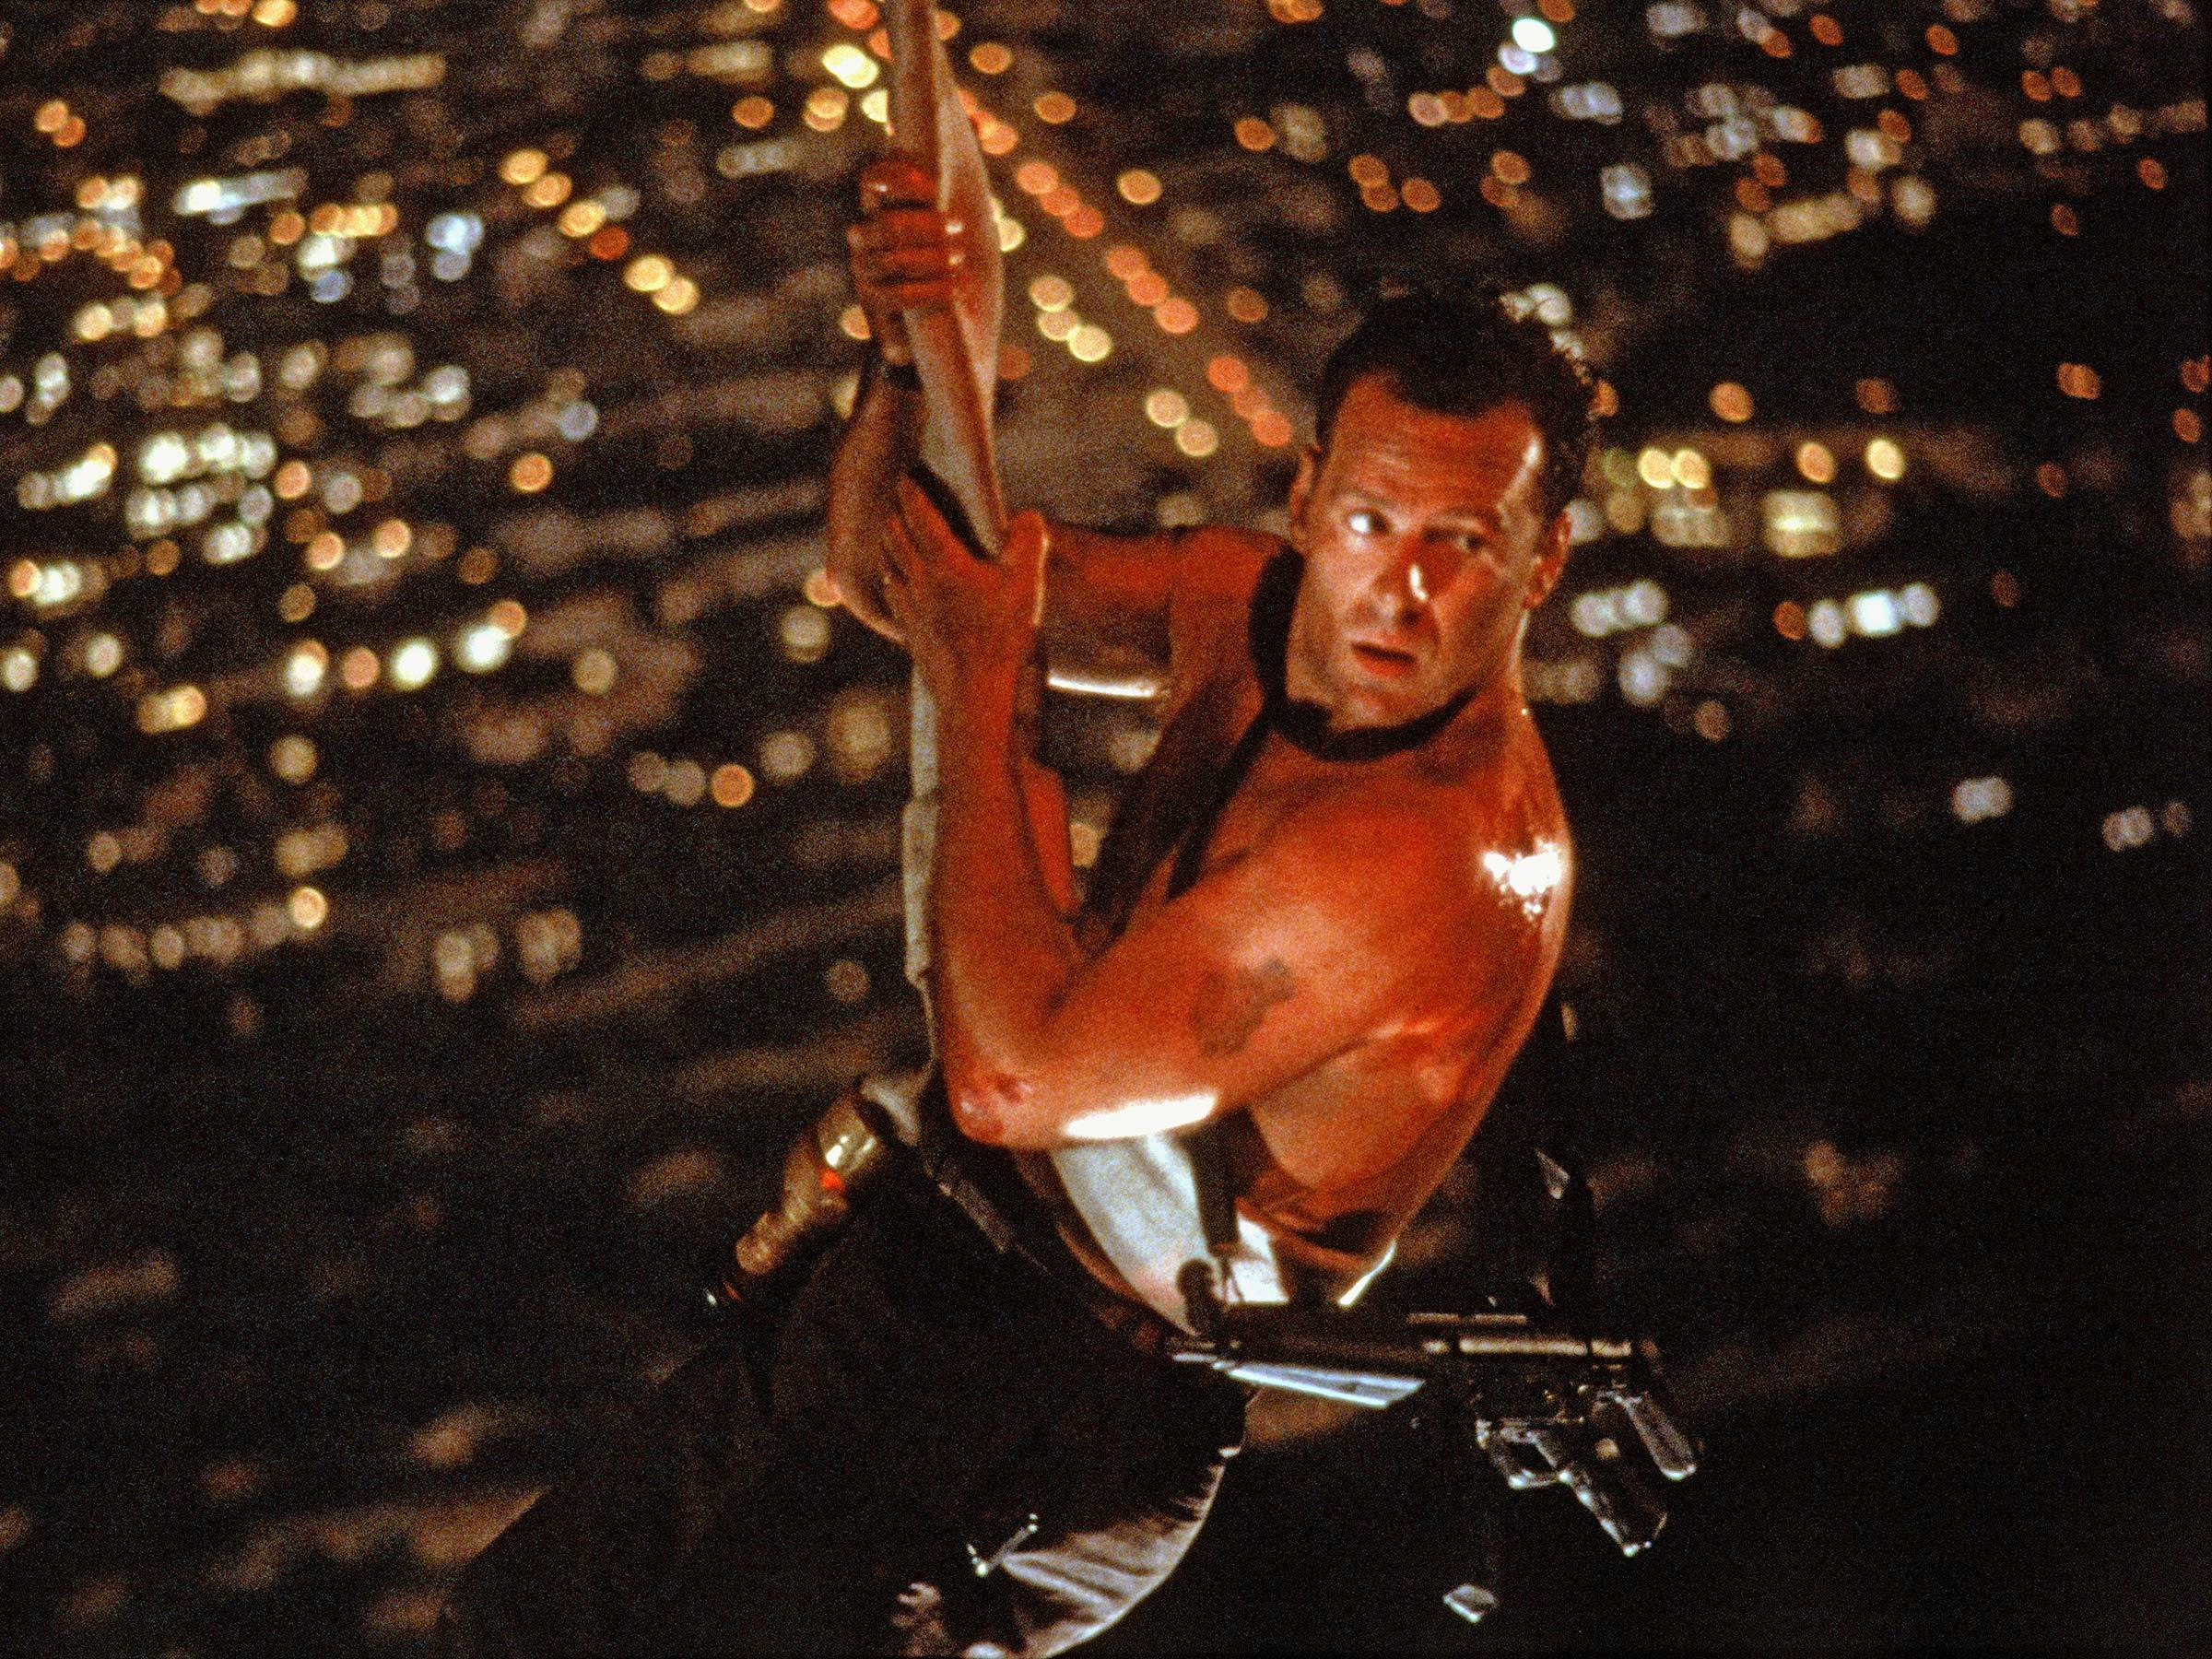 An image from Die Hard showing McClane hanging from the skyscraper